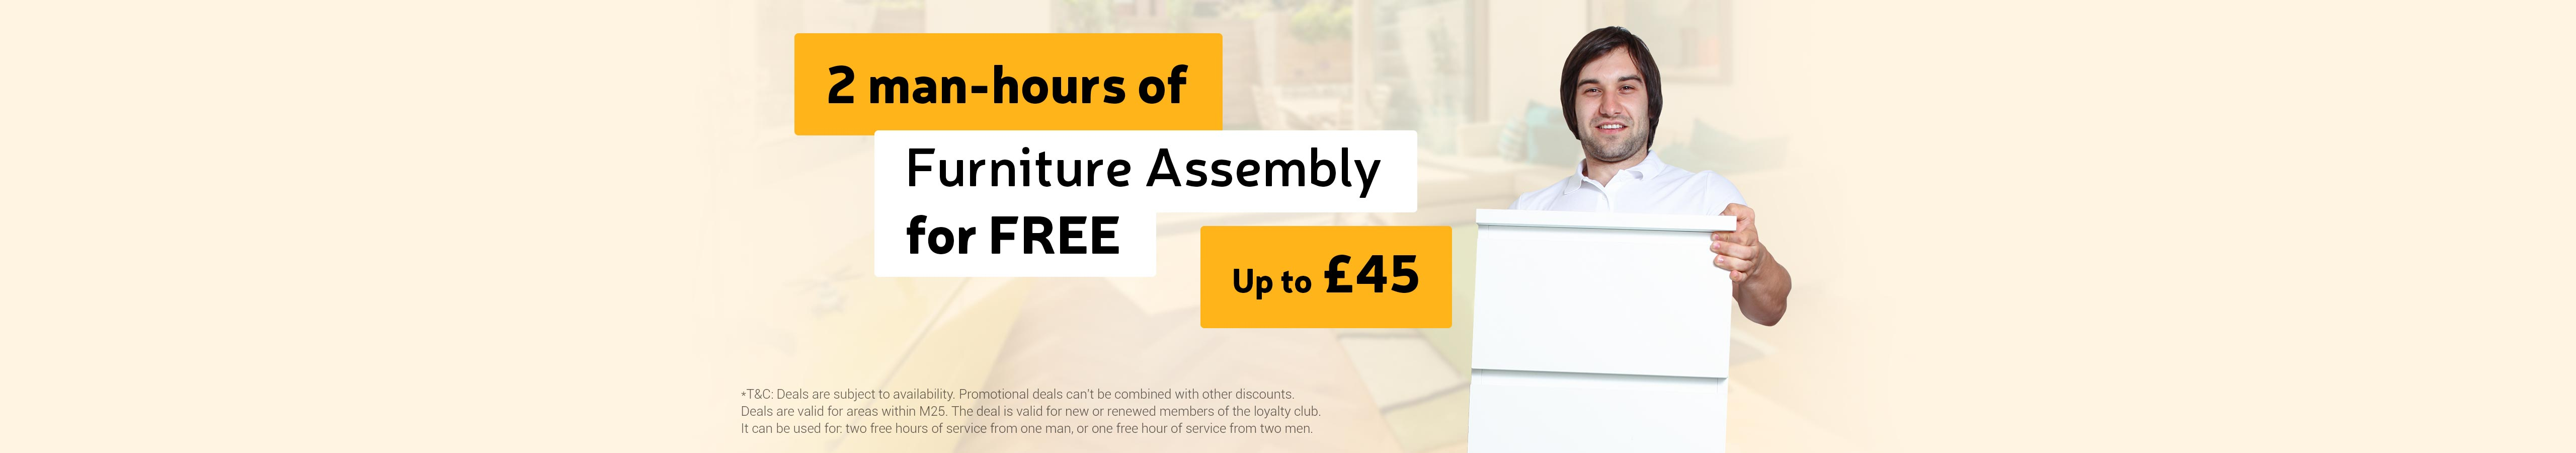 2 man-hours of Furniture assembly for free (up to £45)